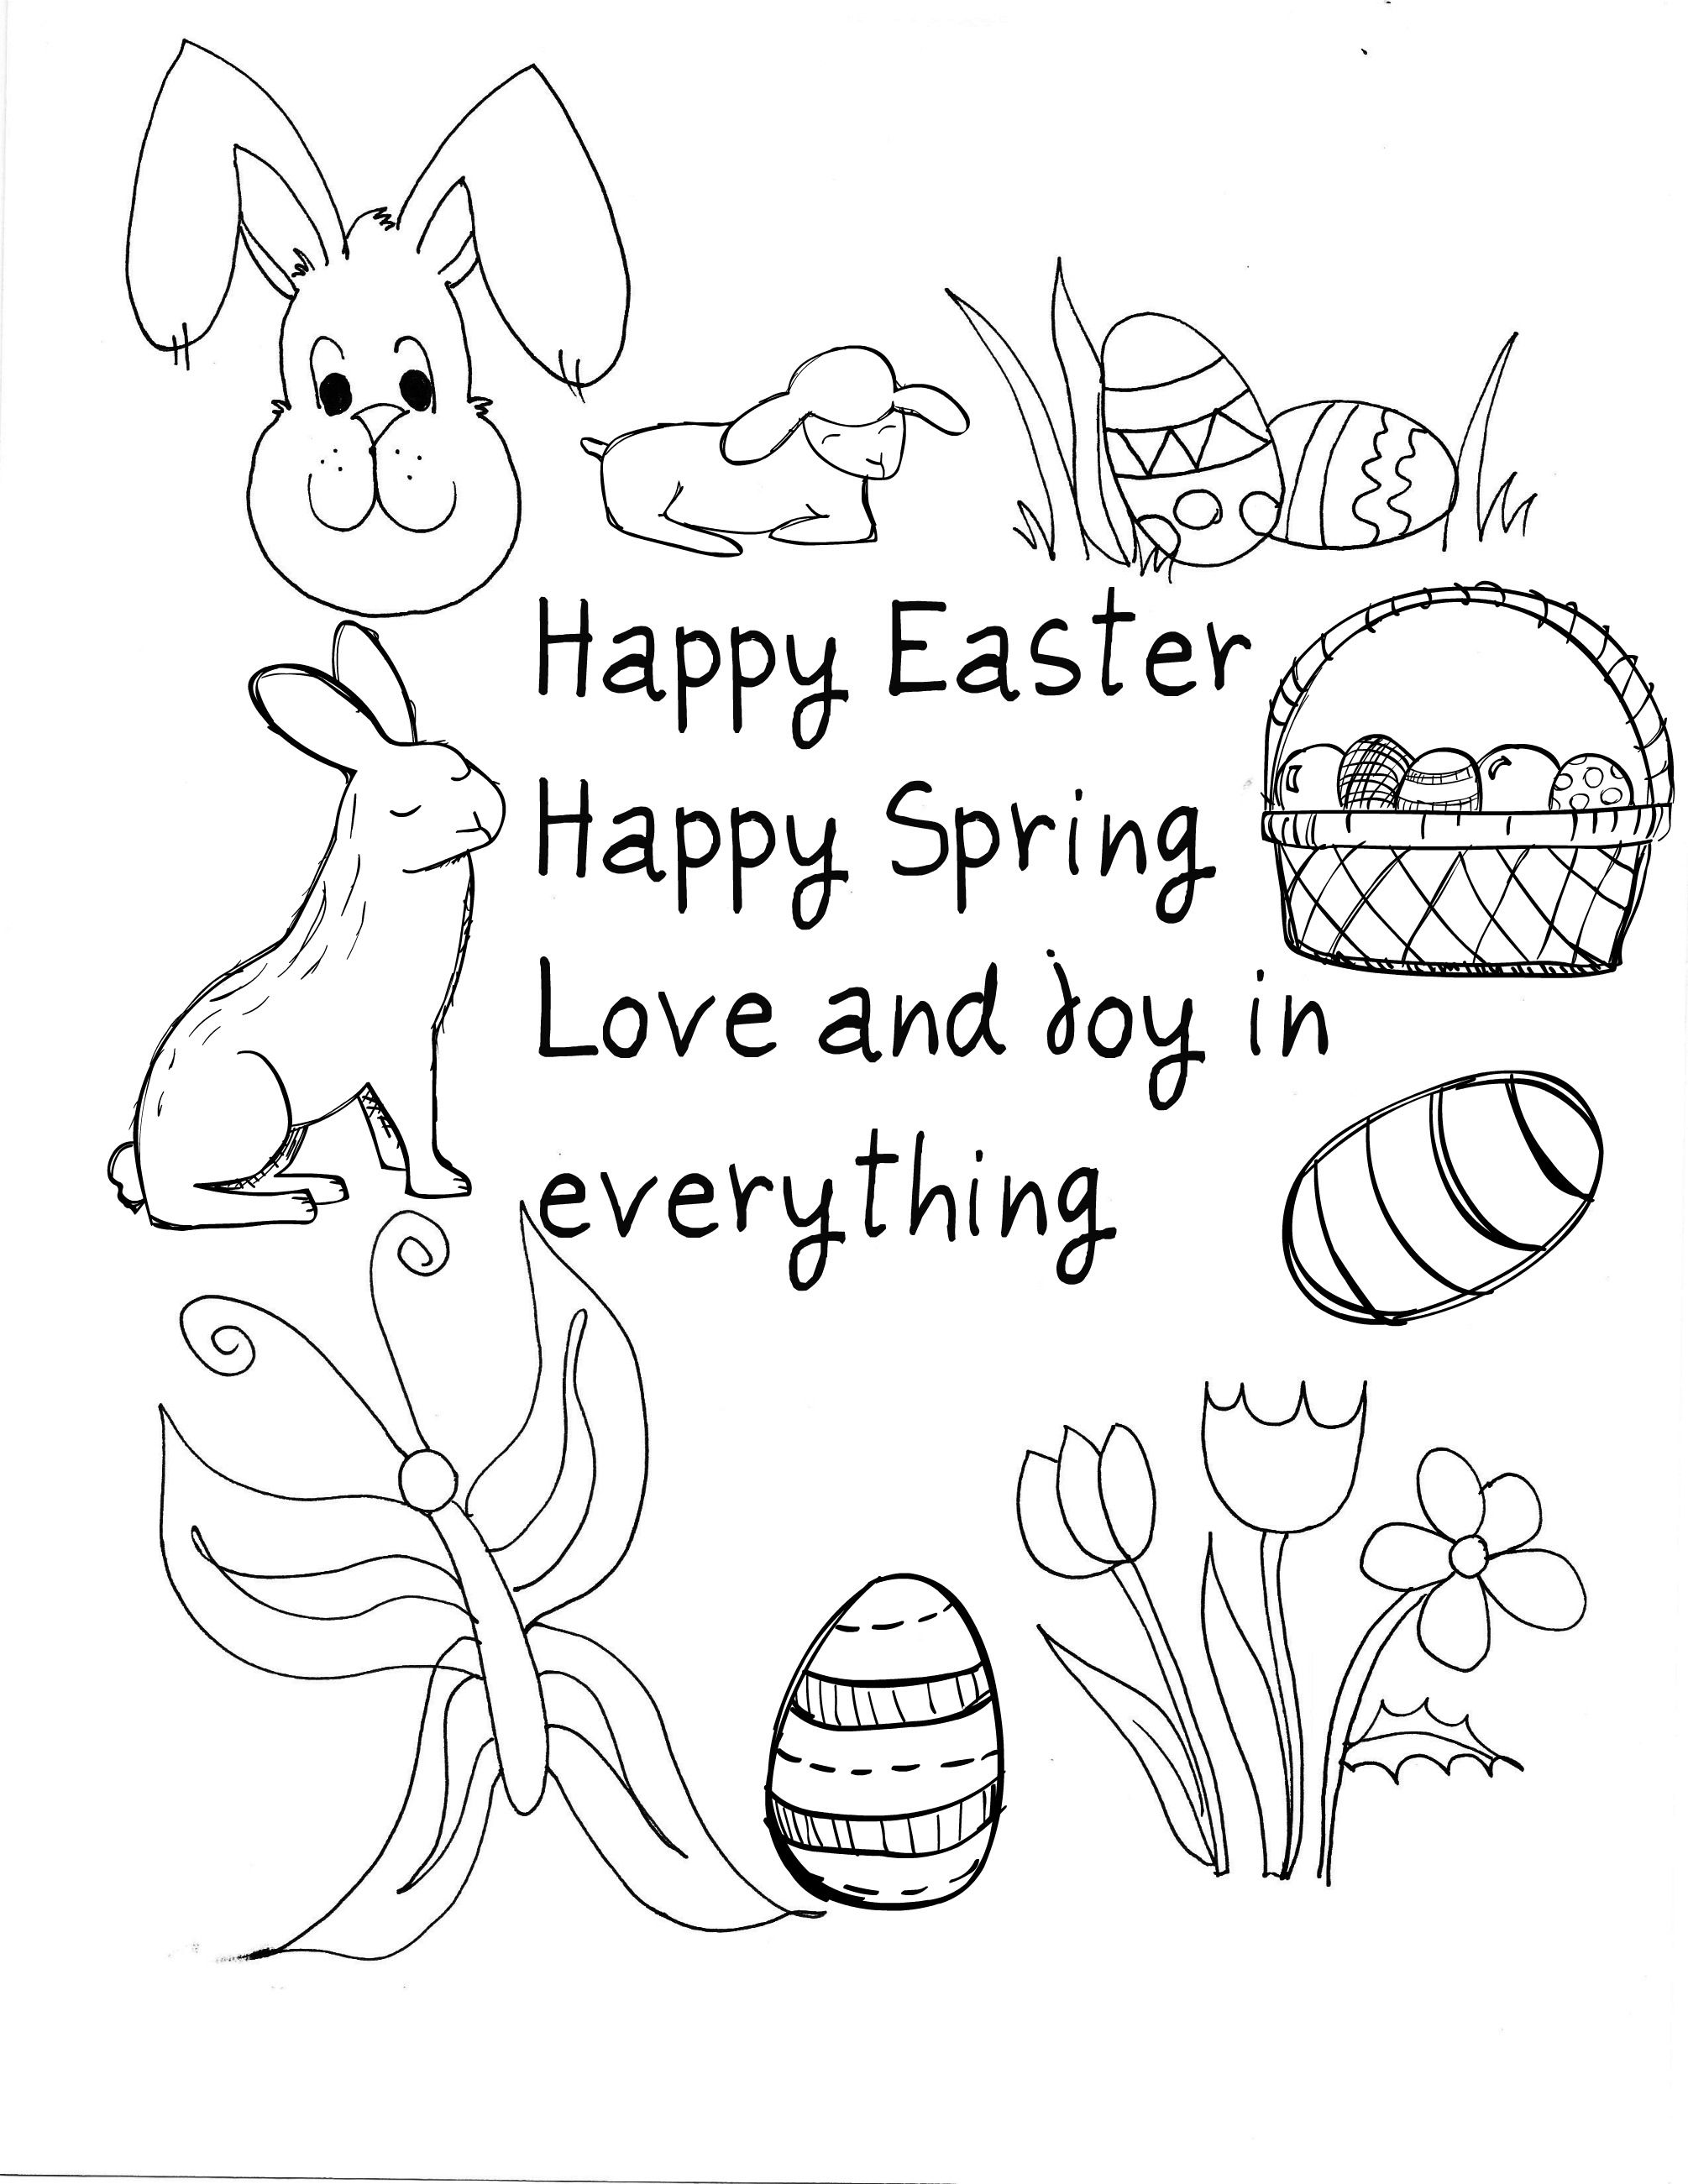 10 Easter Printable Cards To Colour | пасха | Pinterest